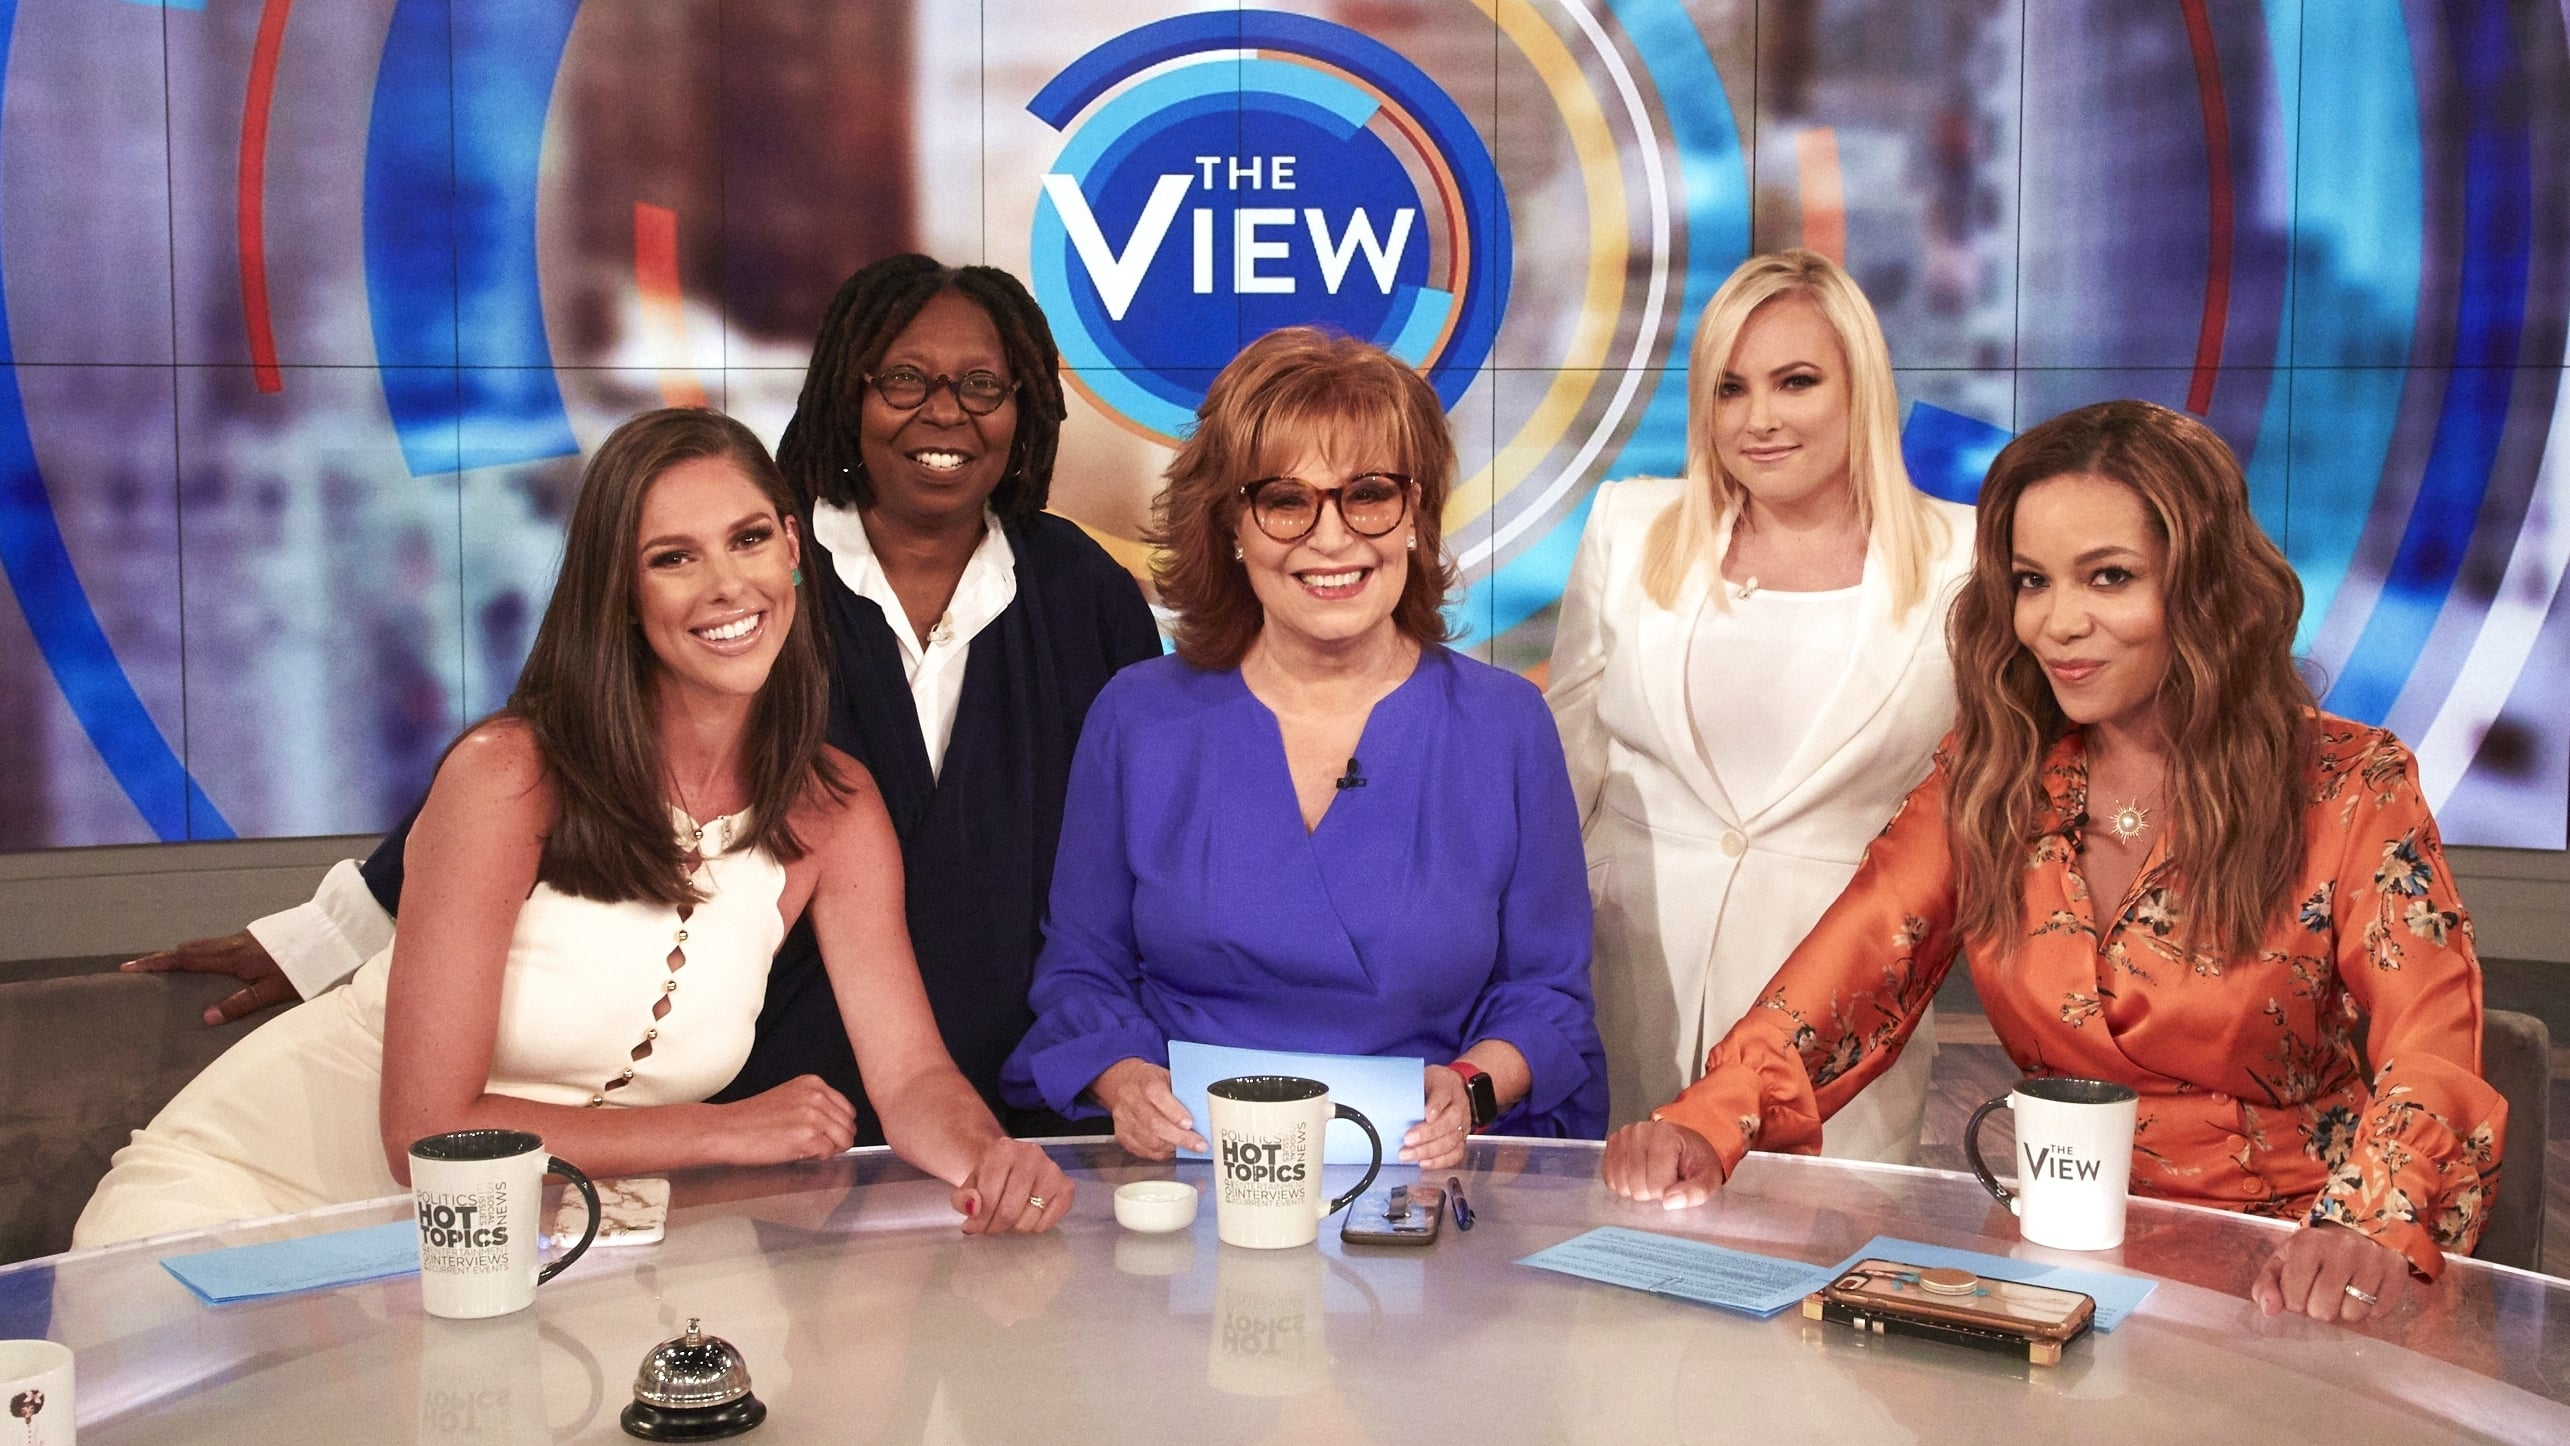 The View - Season 4 Episode 172 : Season 4, Episode 172